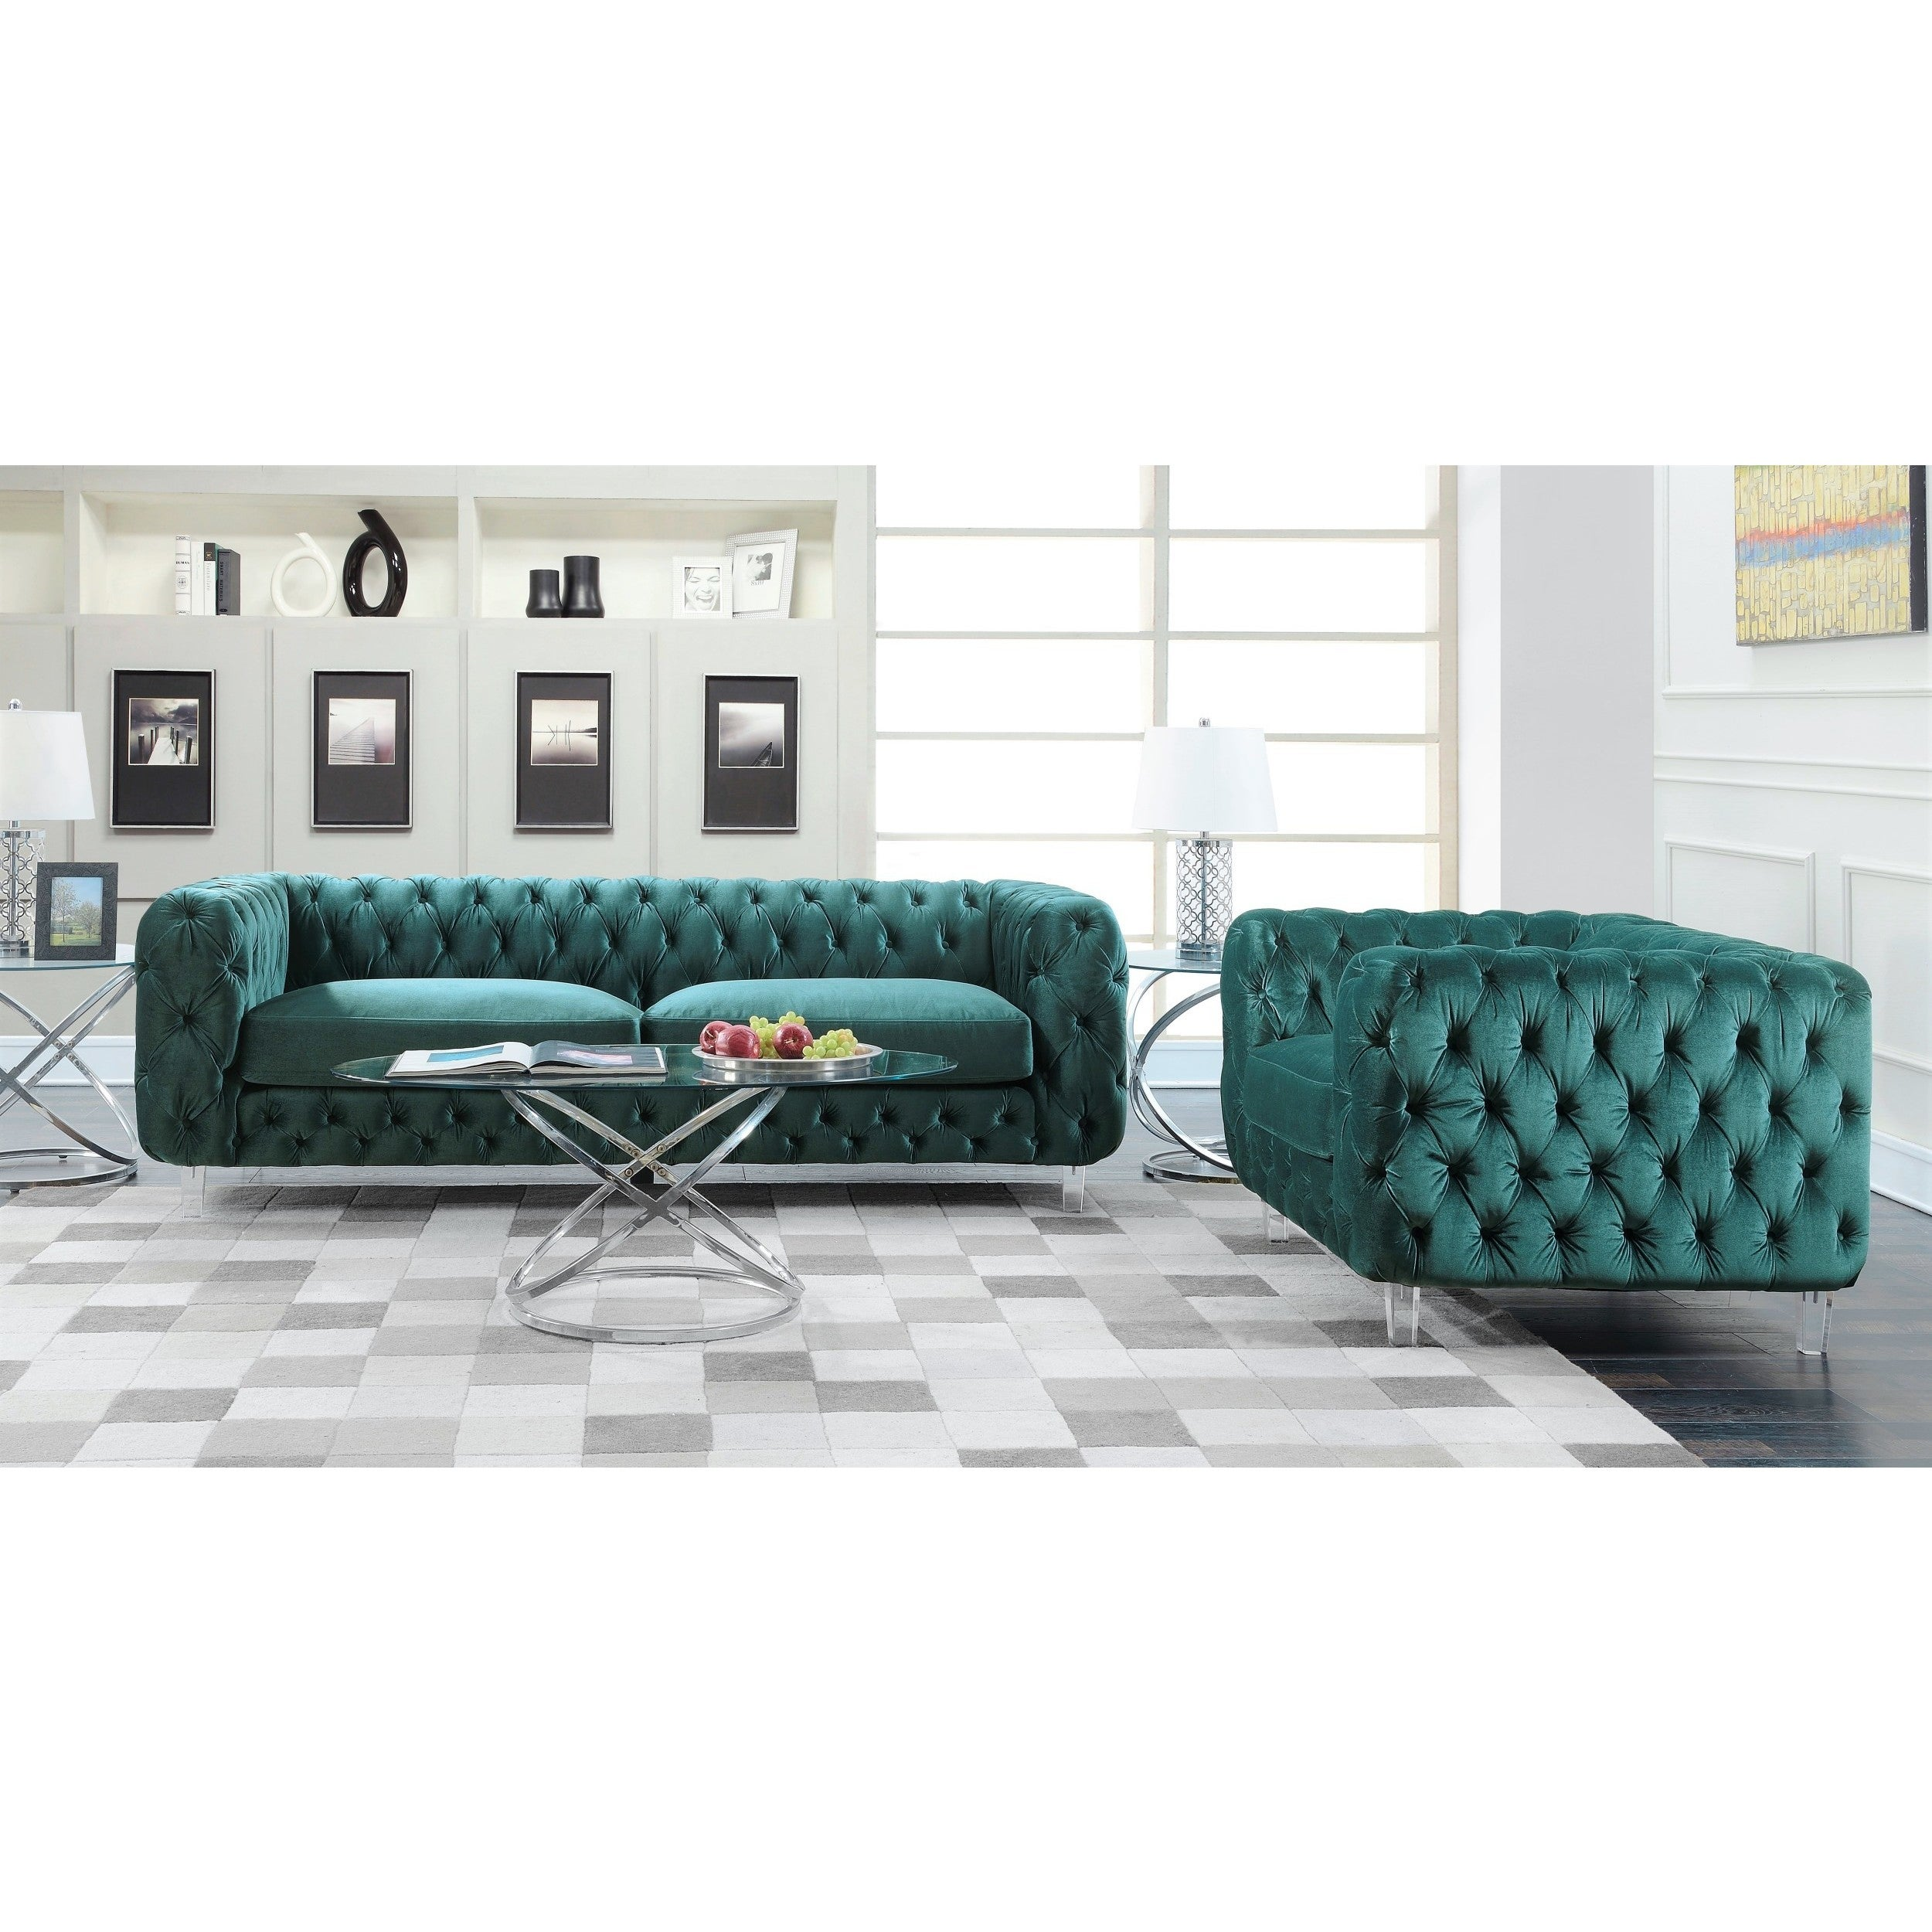 Chic Home Apollo Modern Contemporary Tufted Velvet Down MIx Cushions Sofa -  Free Shipping Today - Overstock.com - 24174719